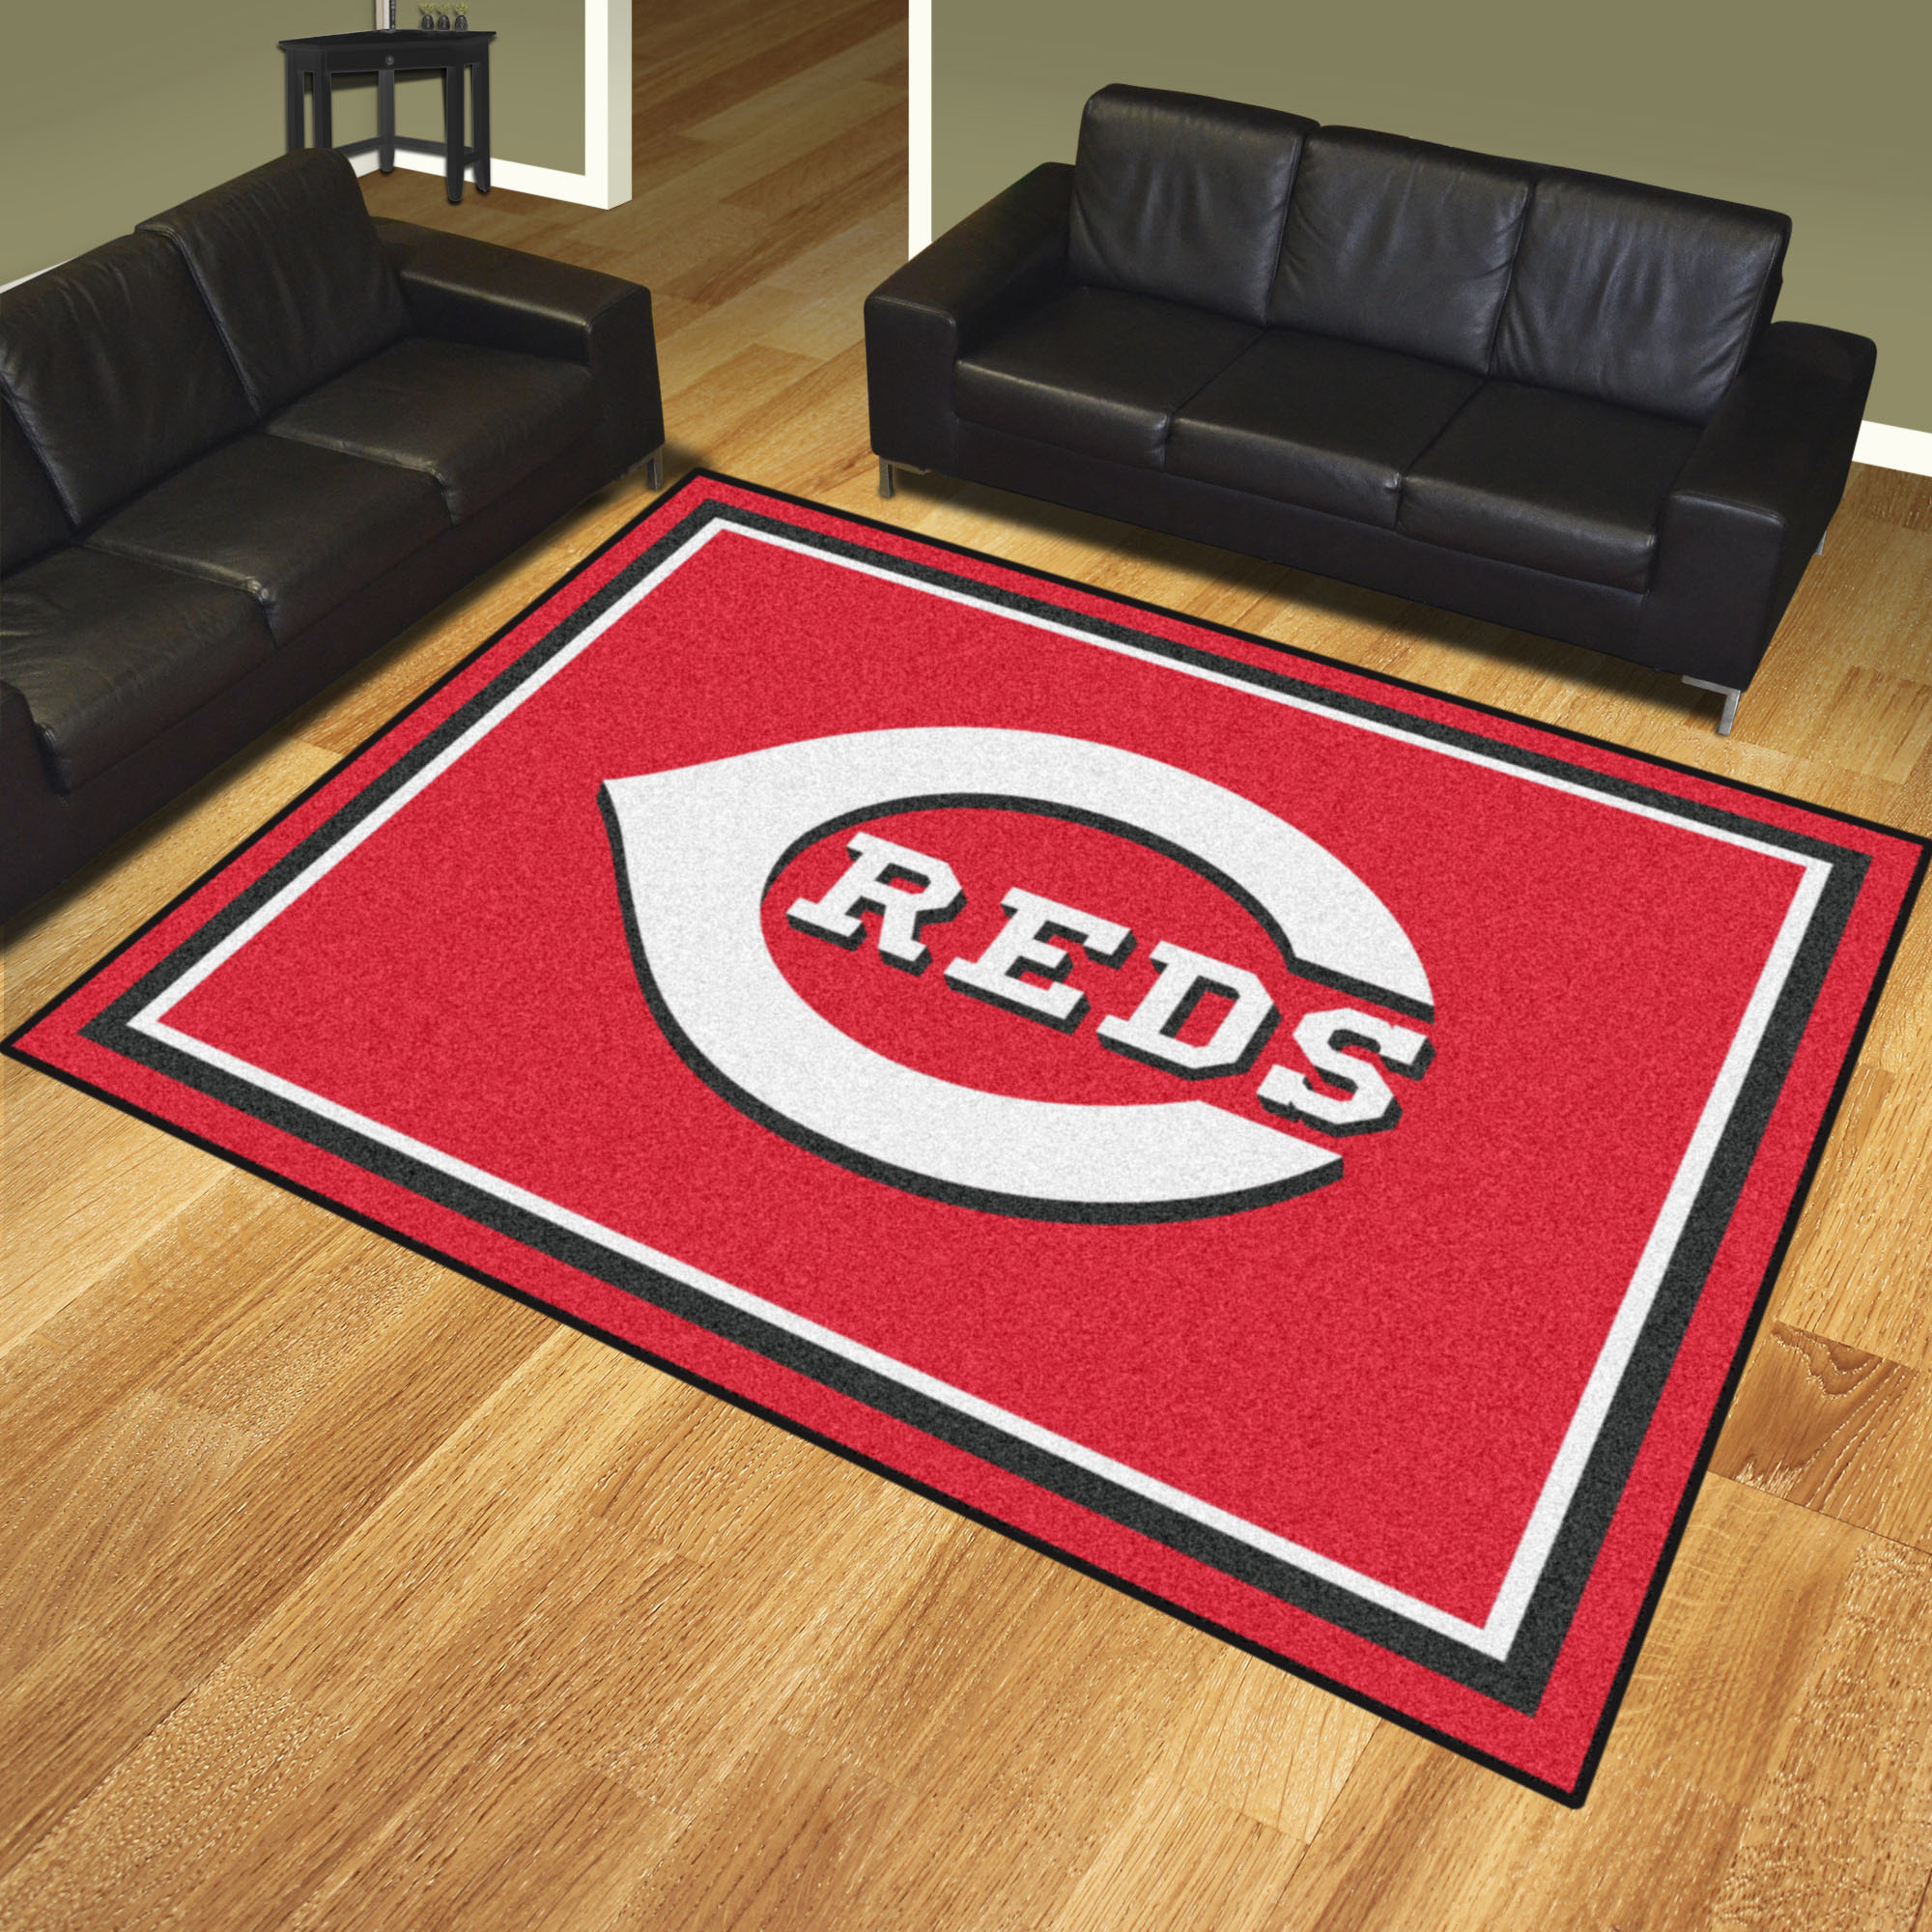 Cincinnati Reds Ultra Plush 8x10 Area Rug